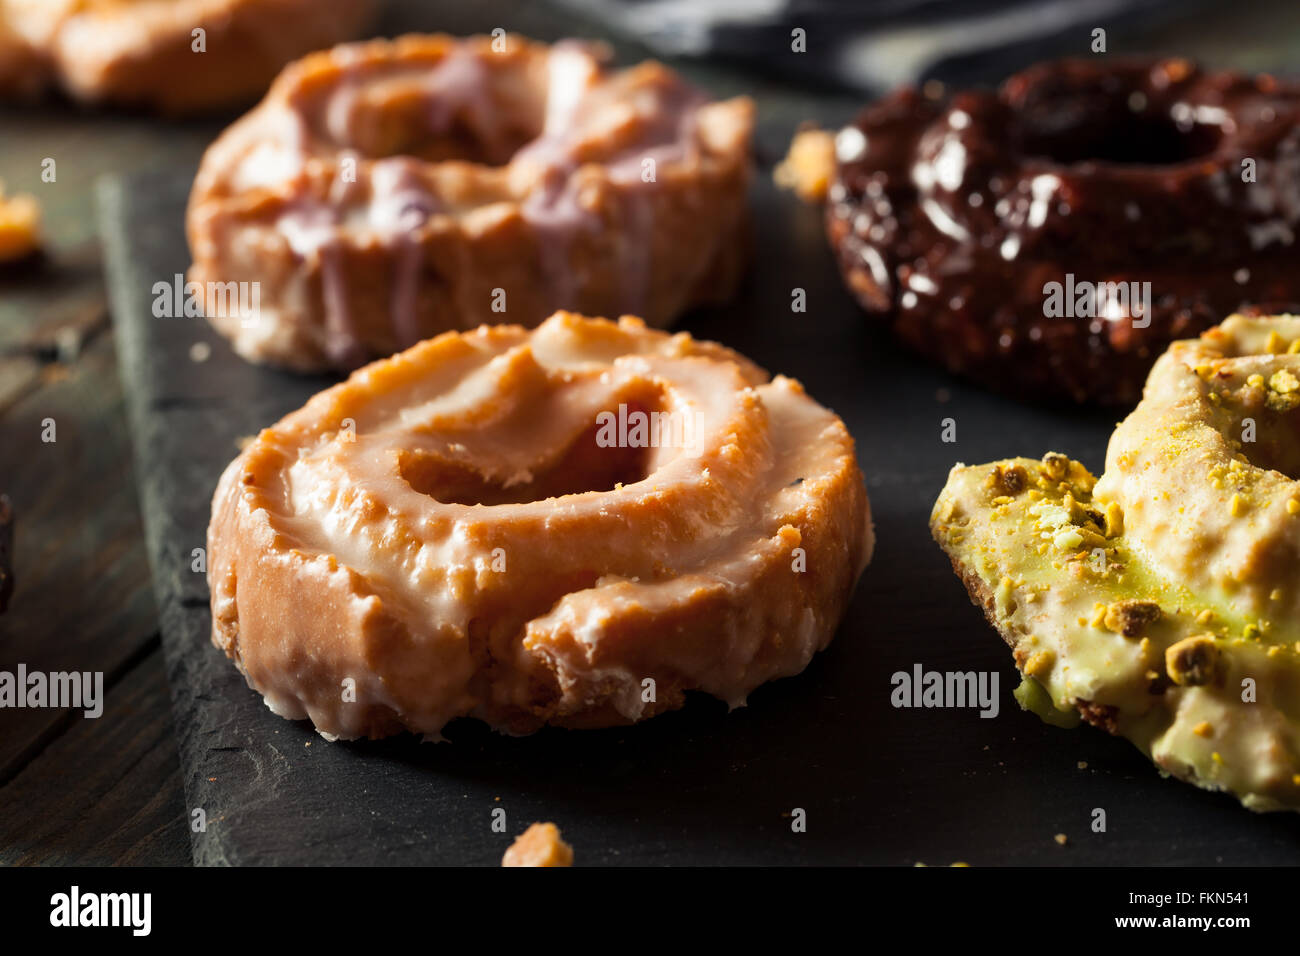 Homemade Old Fashioned Donuts with Chocolate and Glaze - Stock Image